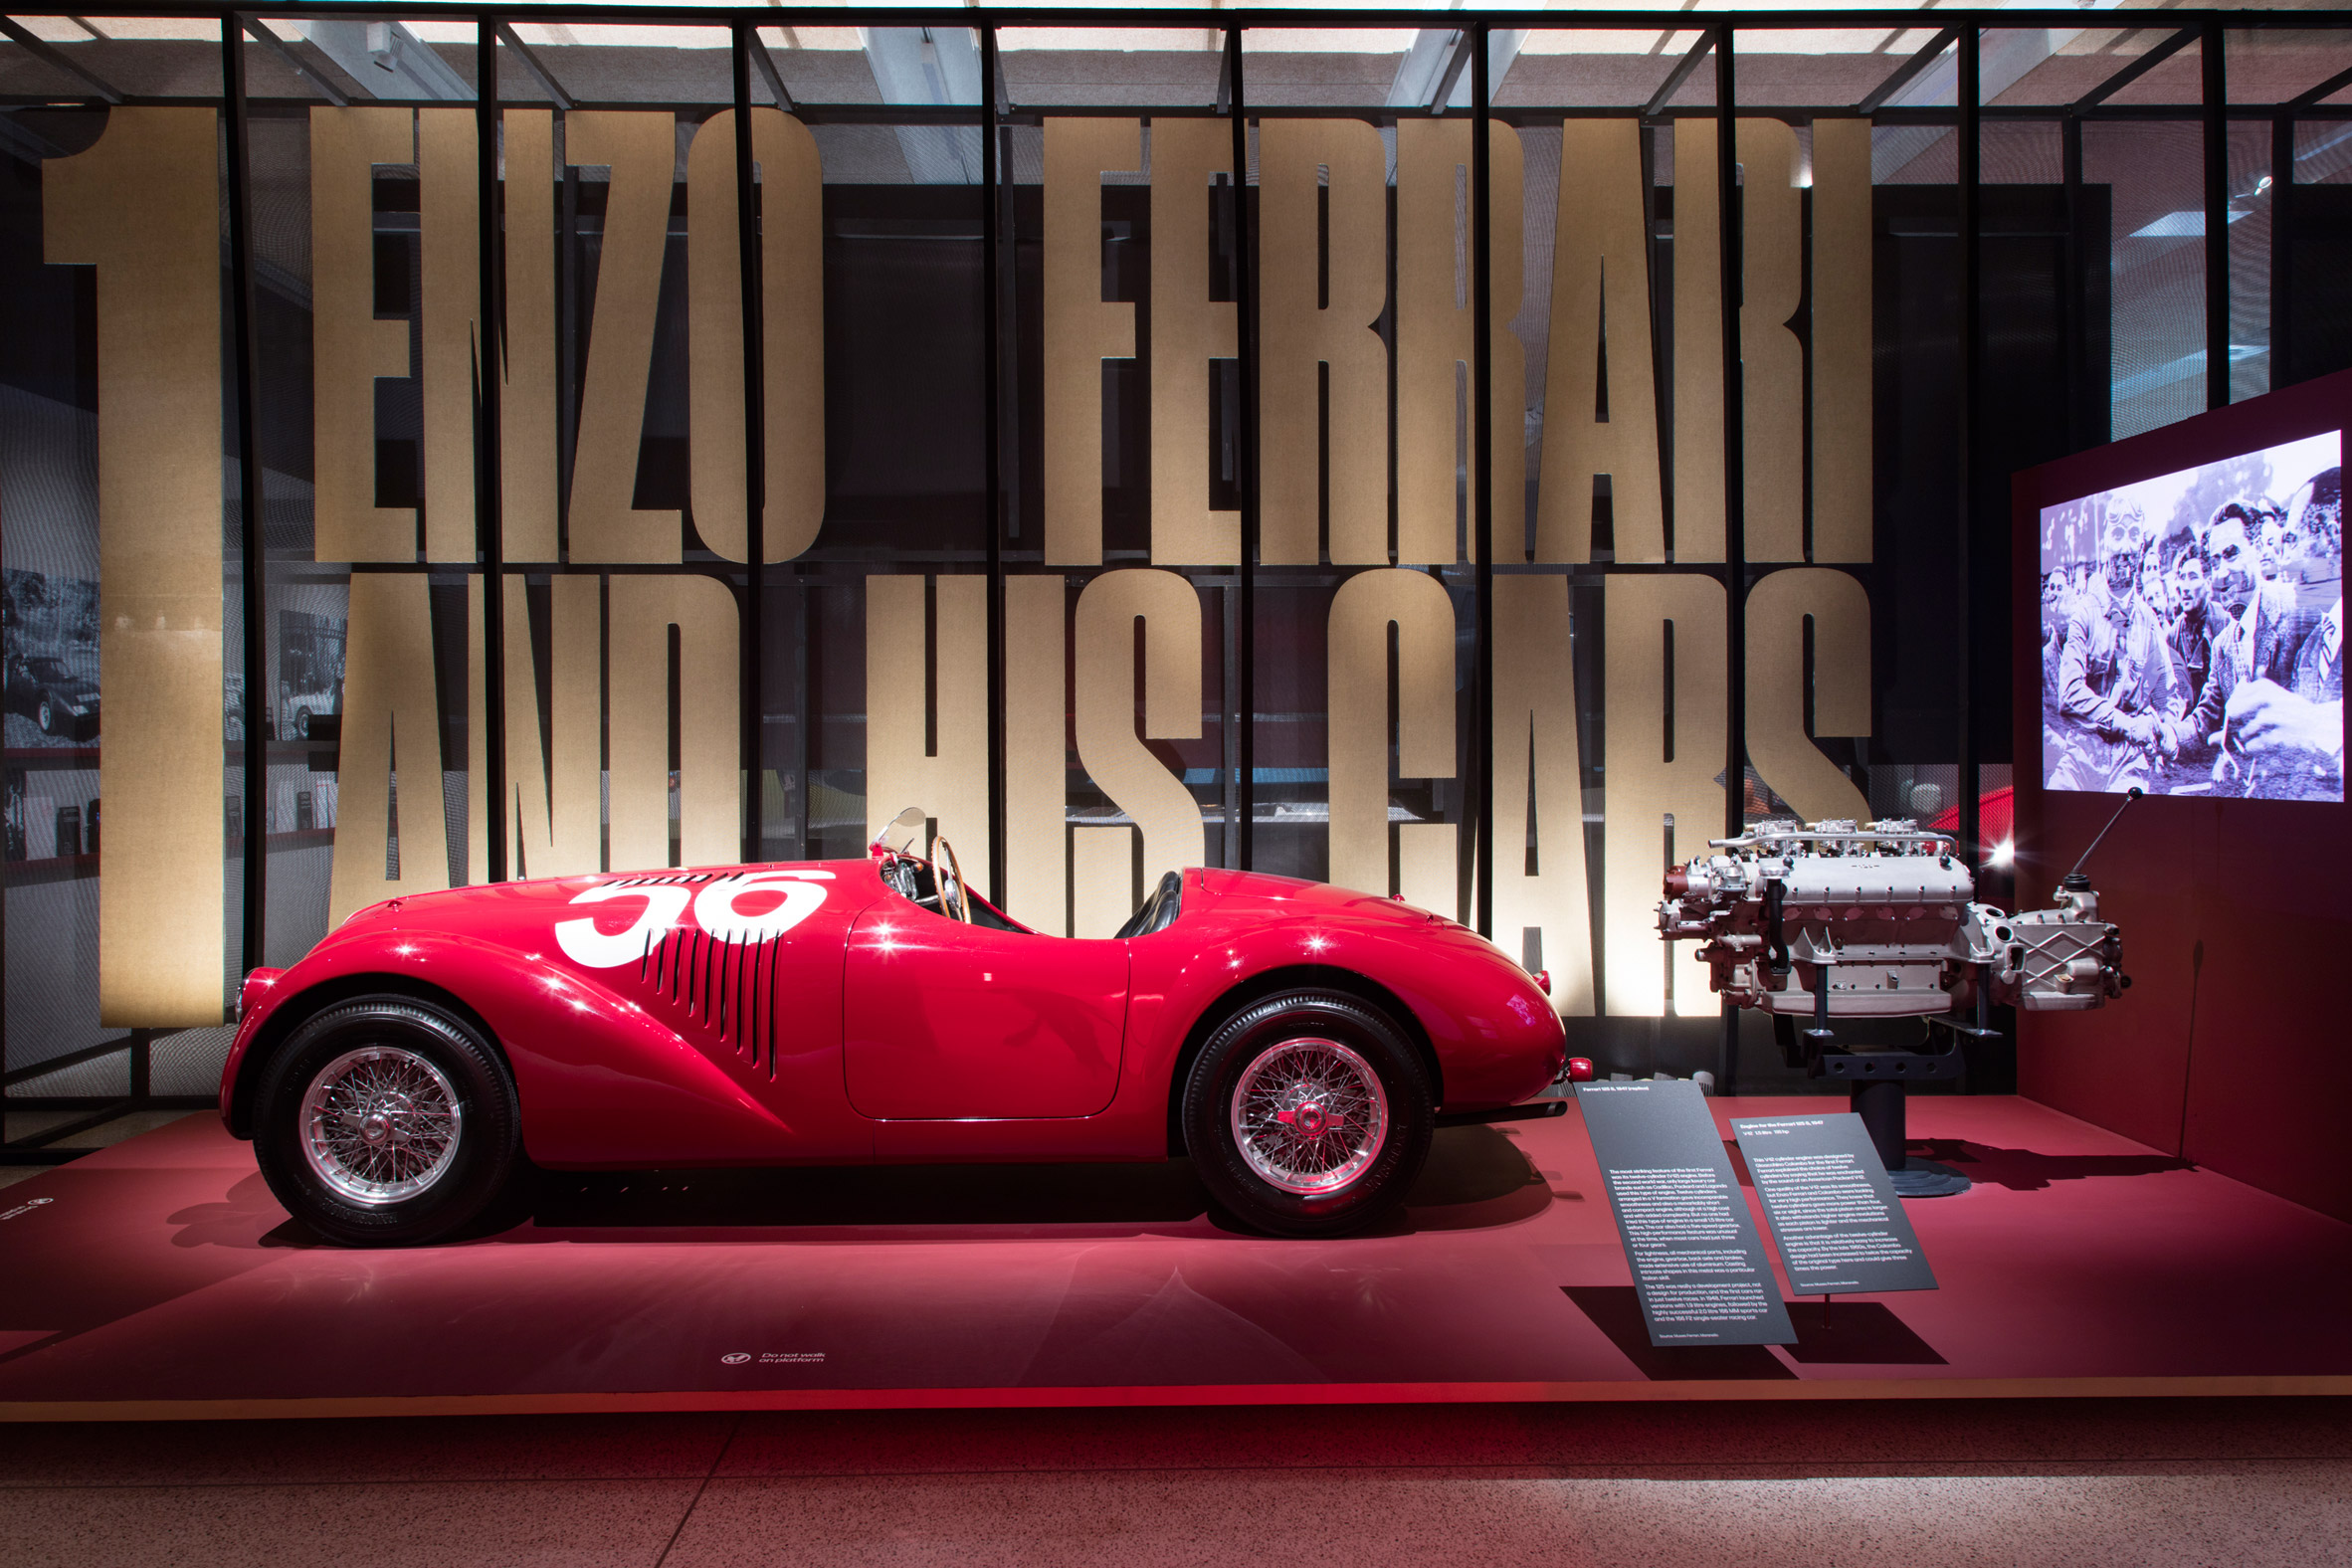 The Show Starts With An Exact Replica Of The First Ferrari Car Ever Made.